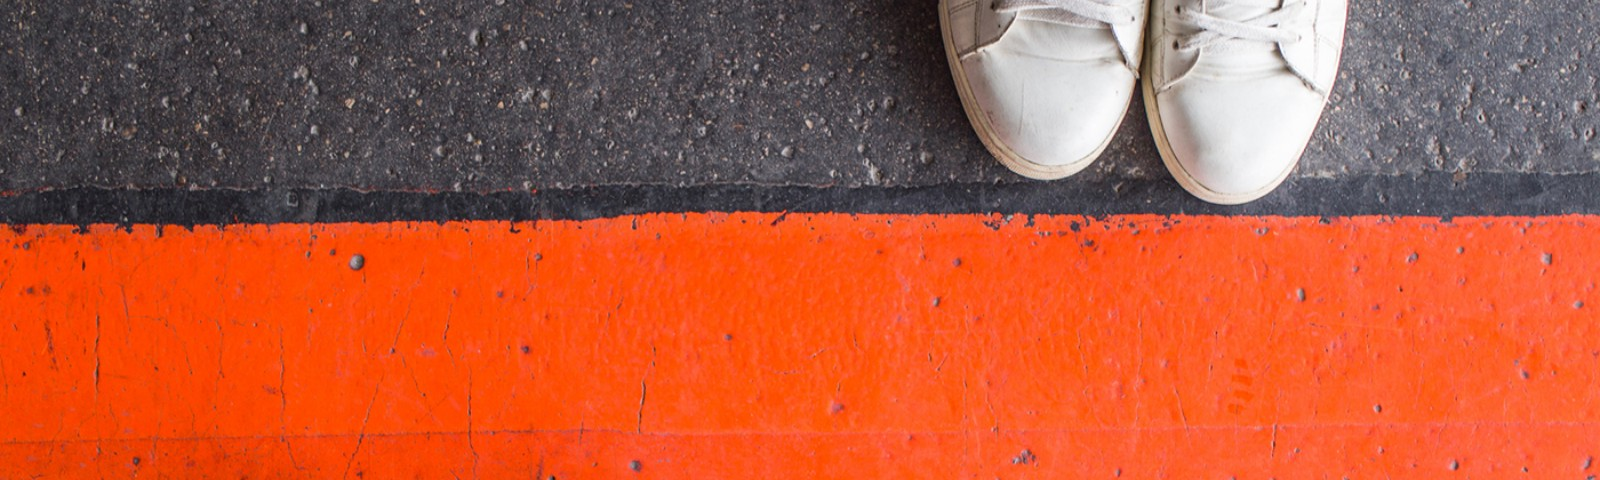 Two sets of feet, one in brown shoes, the other in white shoes, are separated by an orange line